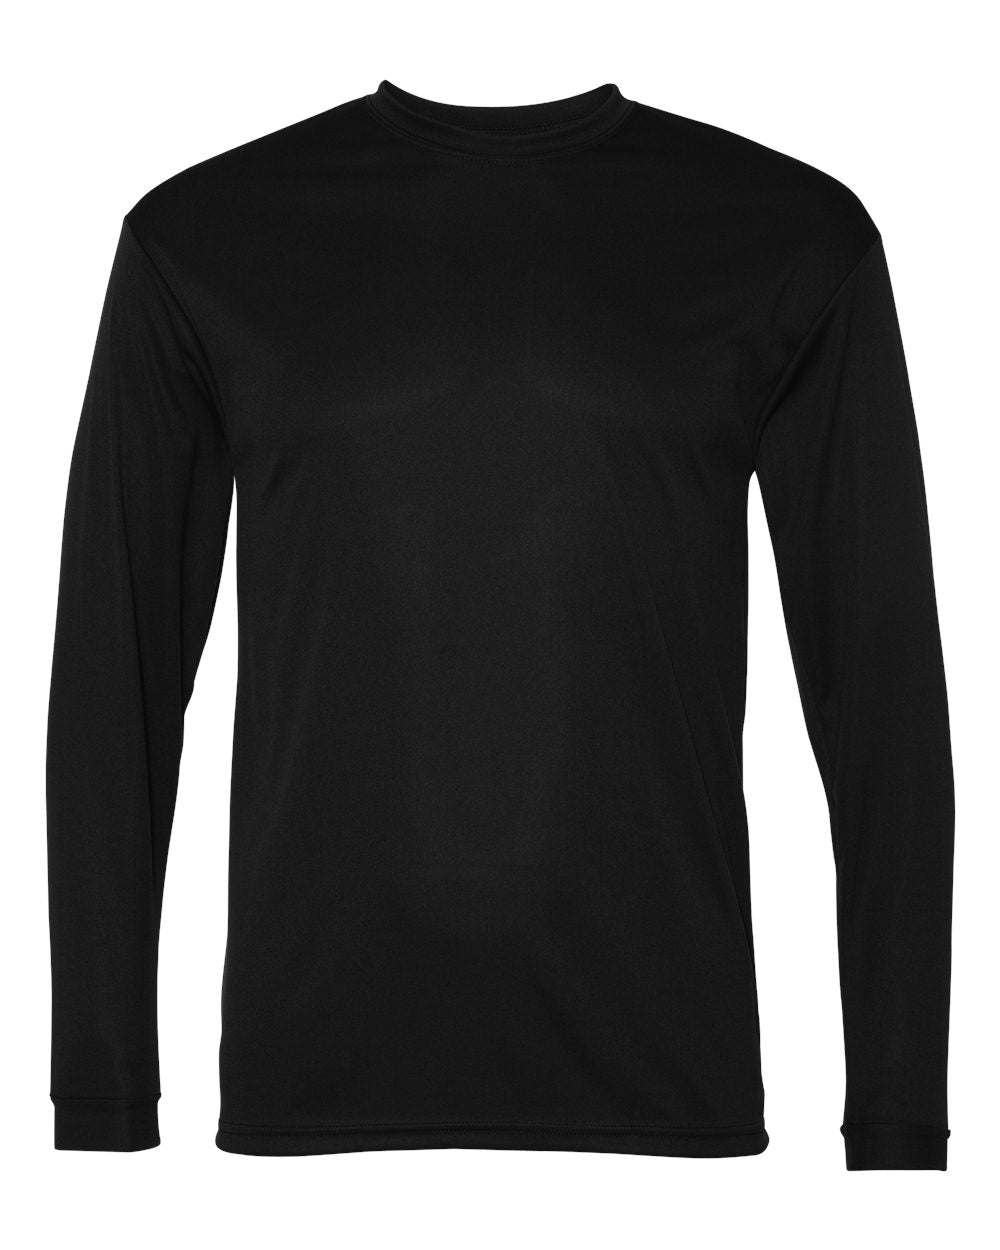 C2 Sport - Performance Long Sleeve T-Shirt